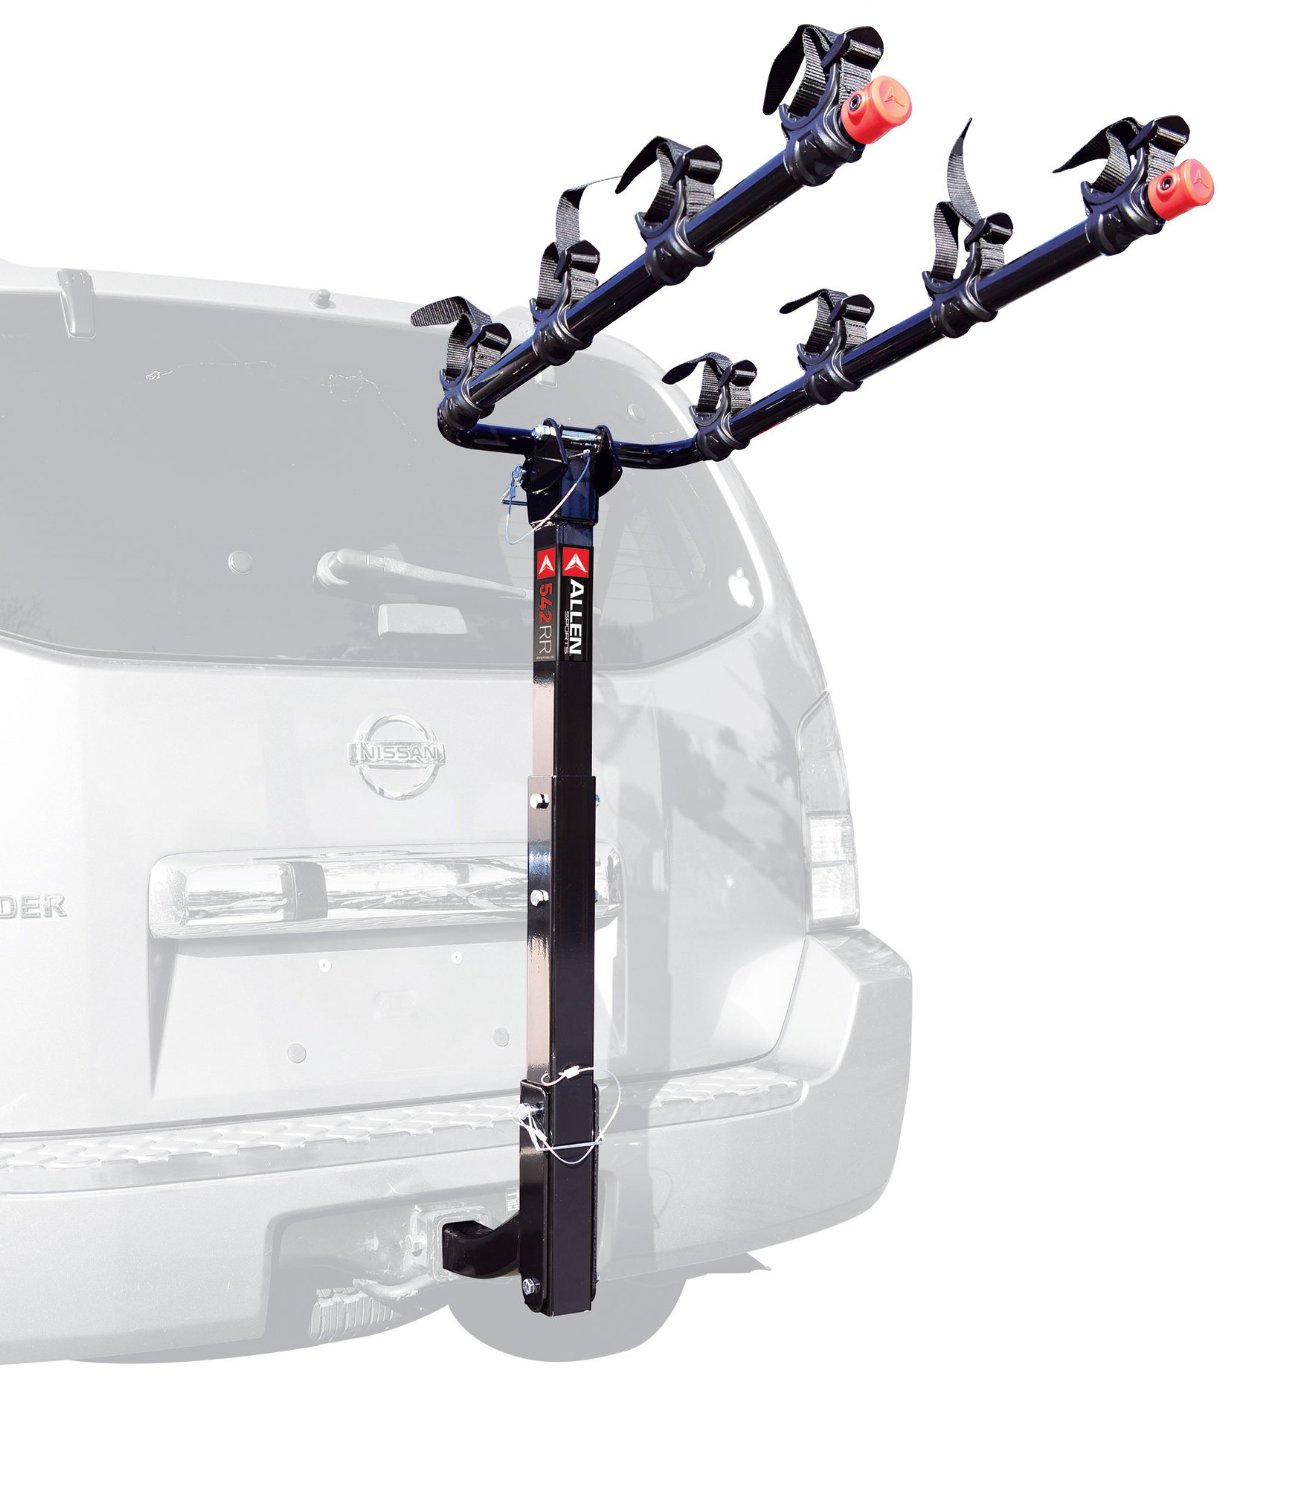 Amazon.com : Allen Sports Deluxe 4-Bike Hitch Mount Rack with 2-Inch Receiver